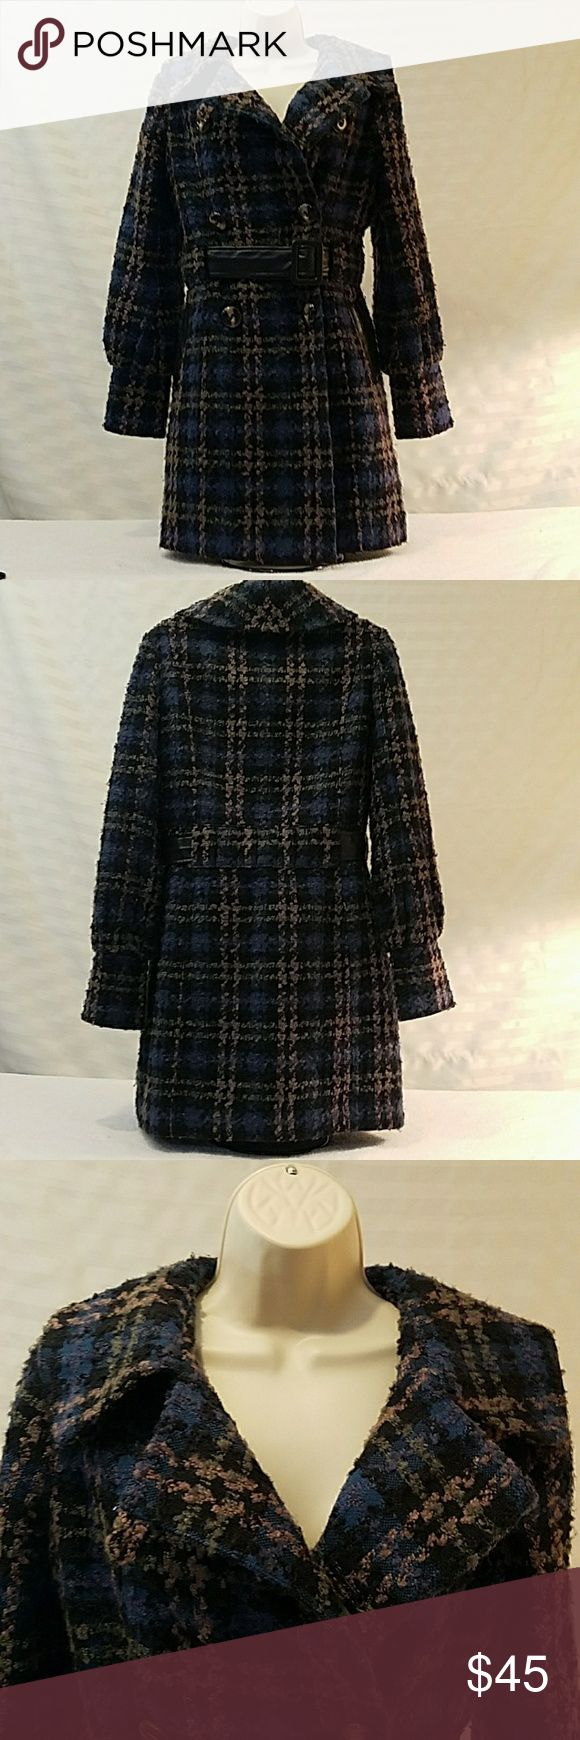 Steve Madden women's peacoat Bishop sleeves Steve Madden  Women's coat   Size medium   Black Blue Olive taupe   Plaid   Peacoat   Bishop sleeves   Belted  Two pockets   Metal tag is not connected see photo   90% acrylic 10% polyester  lining 100% polyester Steve Madden Jackets & Coats Pea Coats